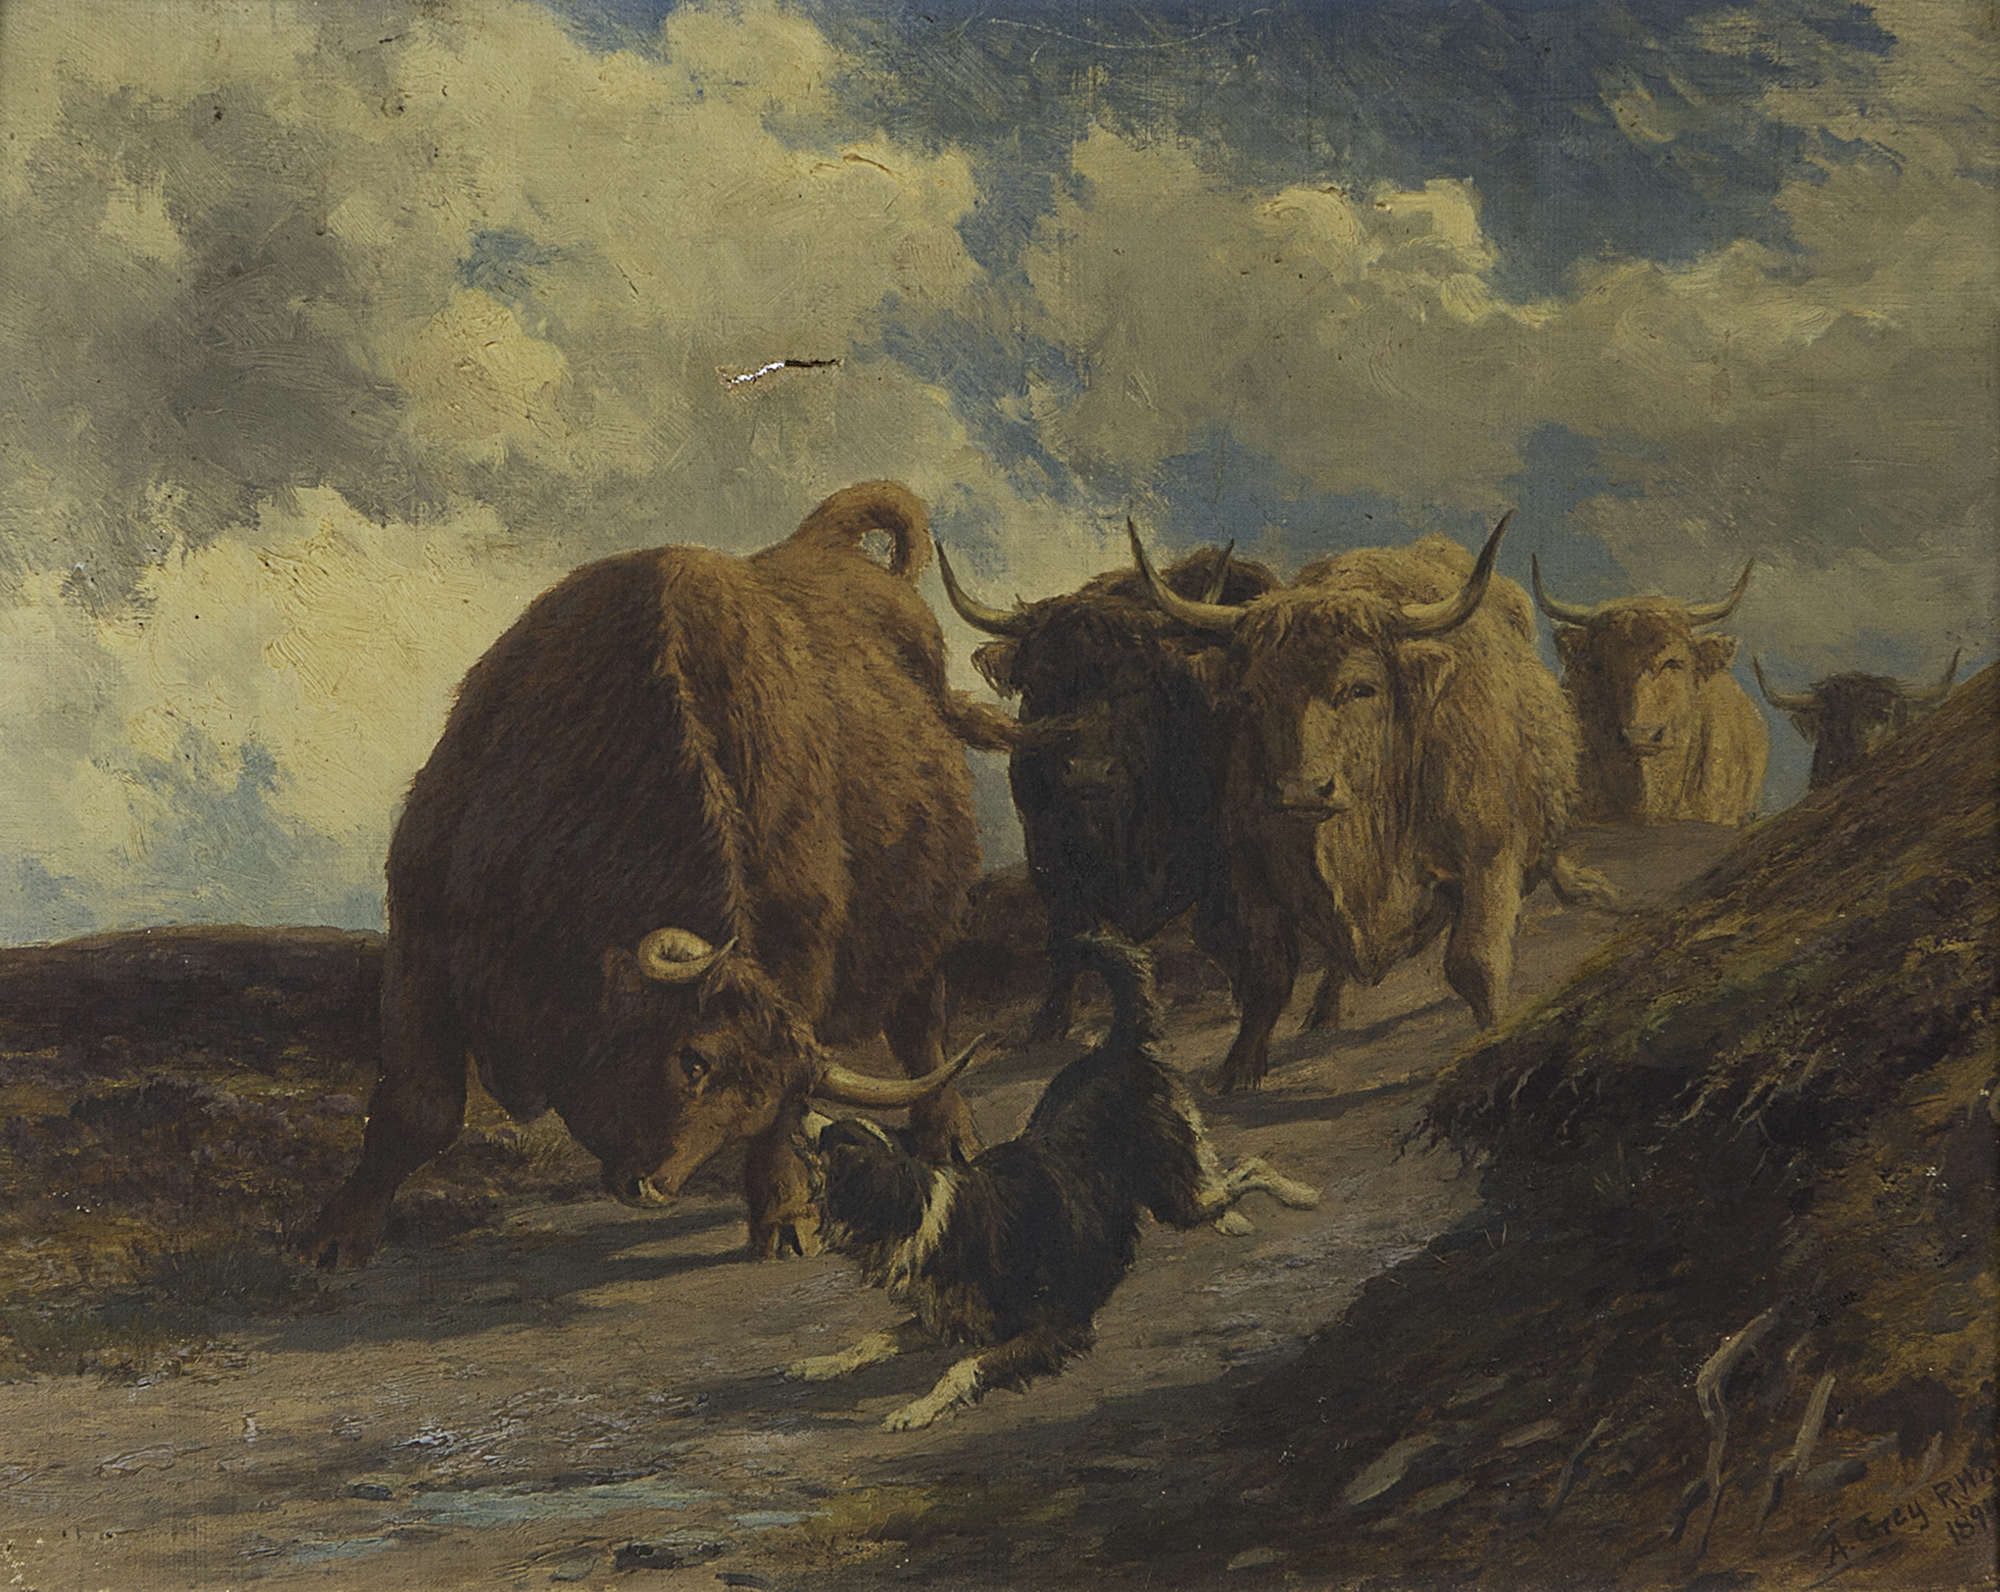 Lot 471 Alfred Grey Rha 1845 1926 Keeping The Herd Together Oil On Canvas 40 X 50cm Signed And Dated 1894